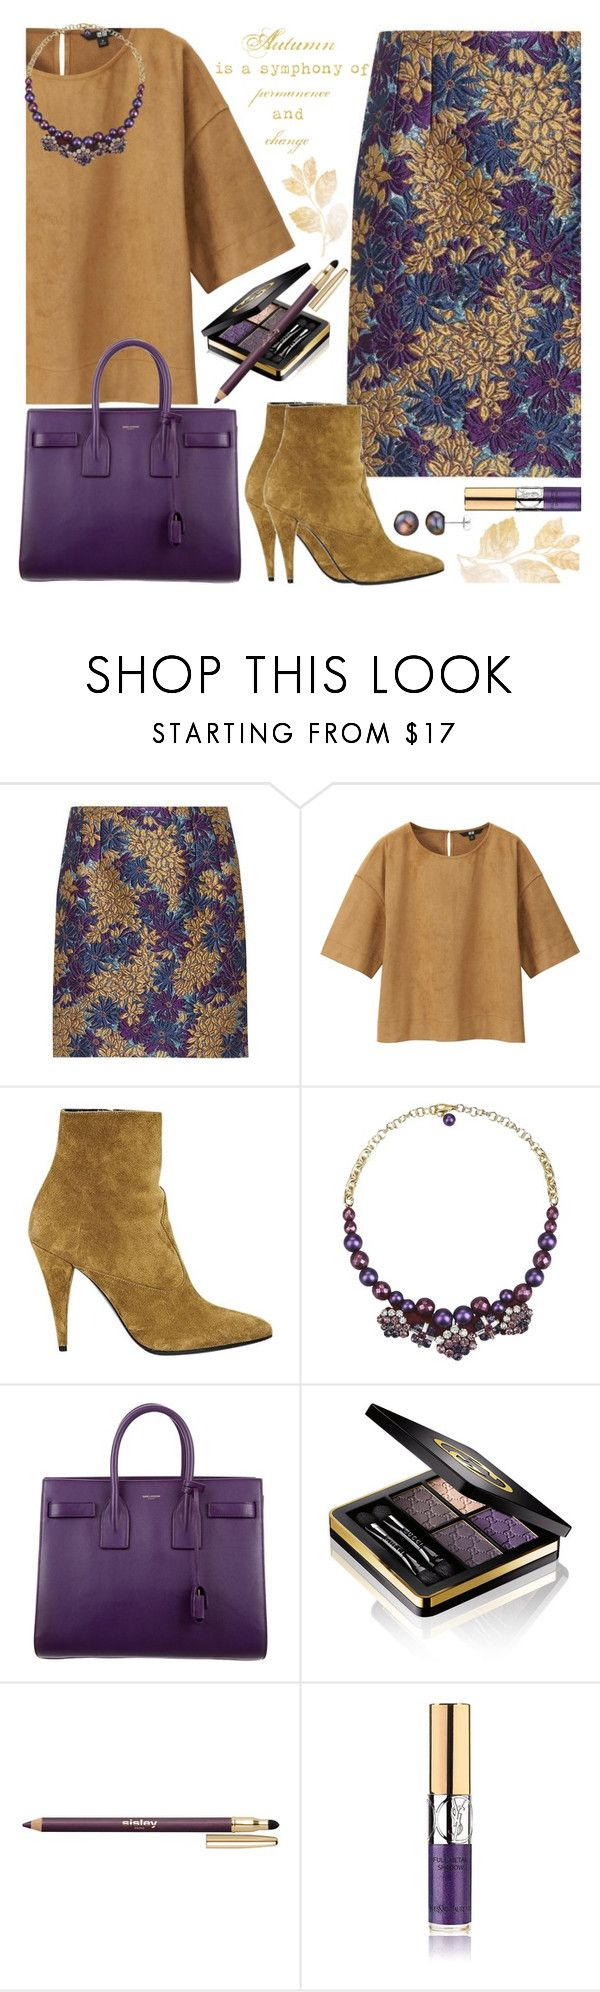 """""""Fall Floral Skirt & Ankle Boots"""" by brendariley-1 ❤ liked on Polyvore featuring Dolce&Gabbana, Uniqlo, Yves Saint Laurent, ORTYS, Gucci, Sisley, A B Davis and fallfashion"""